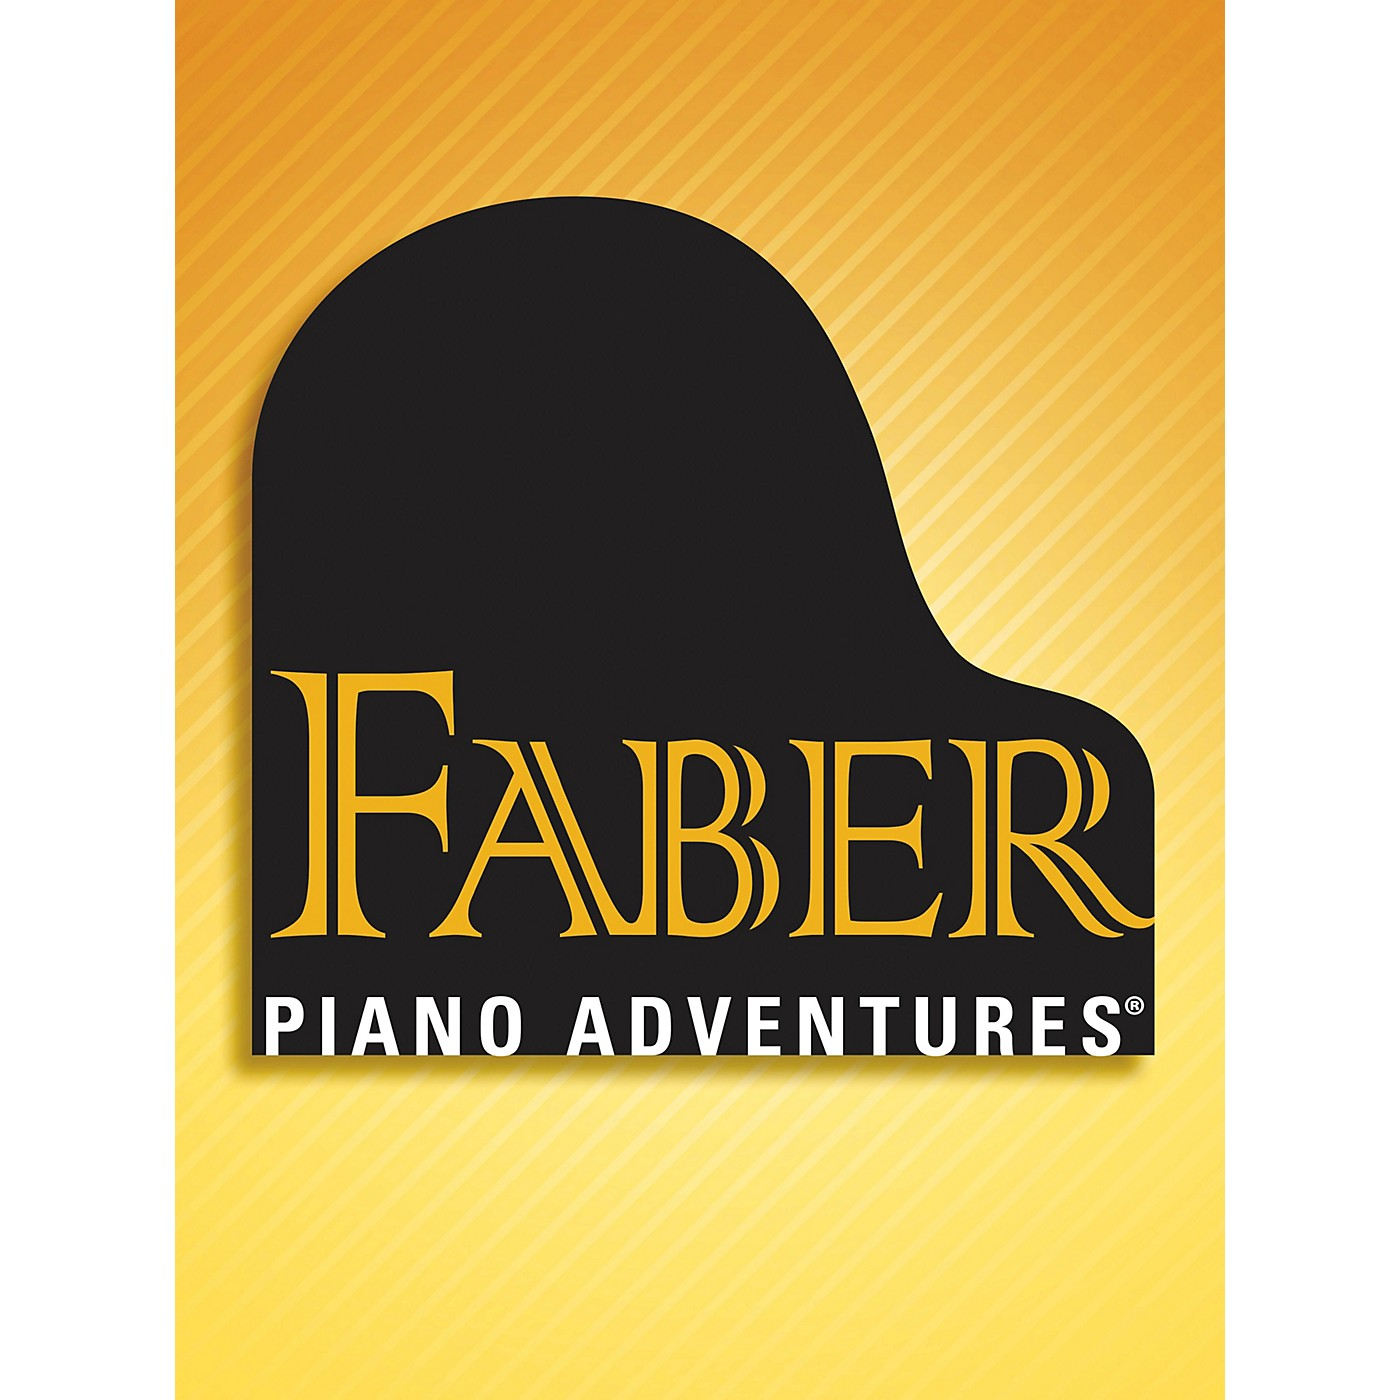 Faber Piano Adventures FunTime® Hymns (Level 3A-3B) Faber Piano Adventures® Series Disk thumbnail